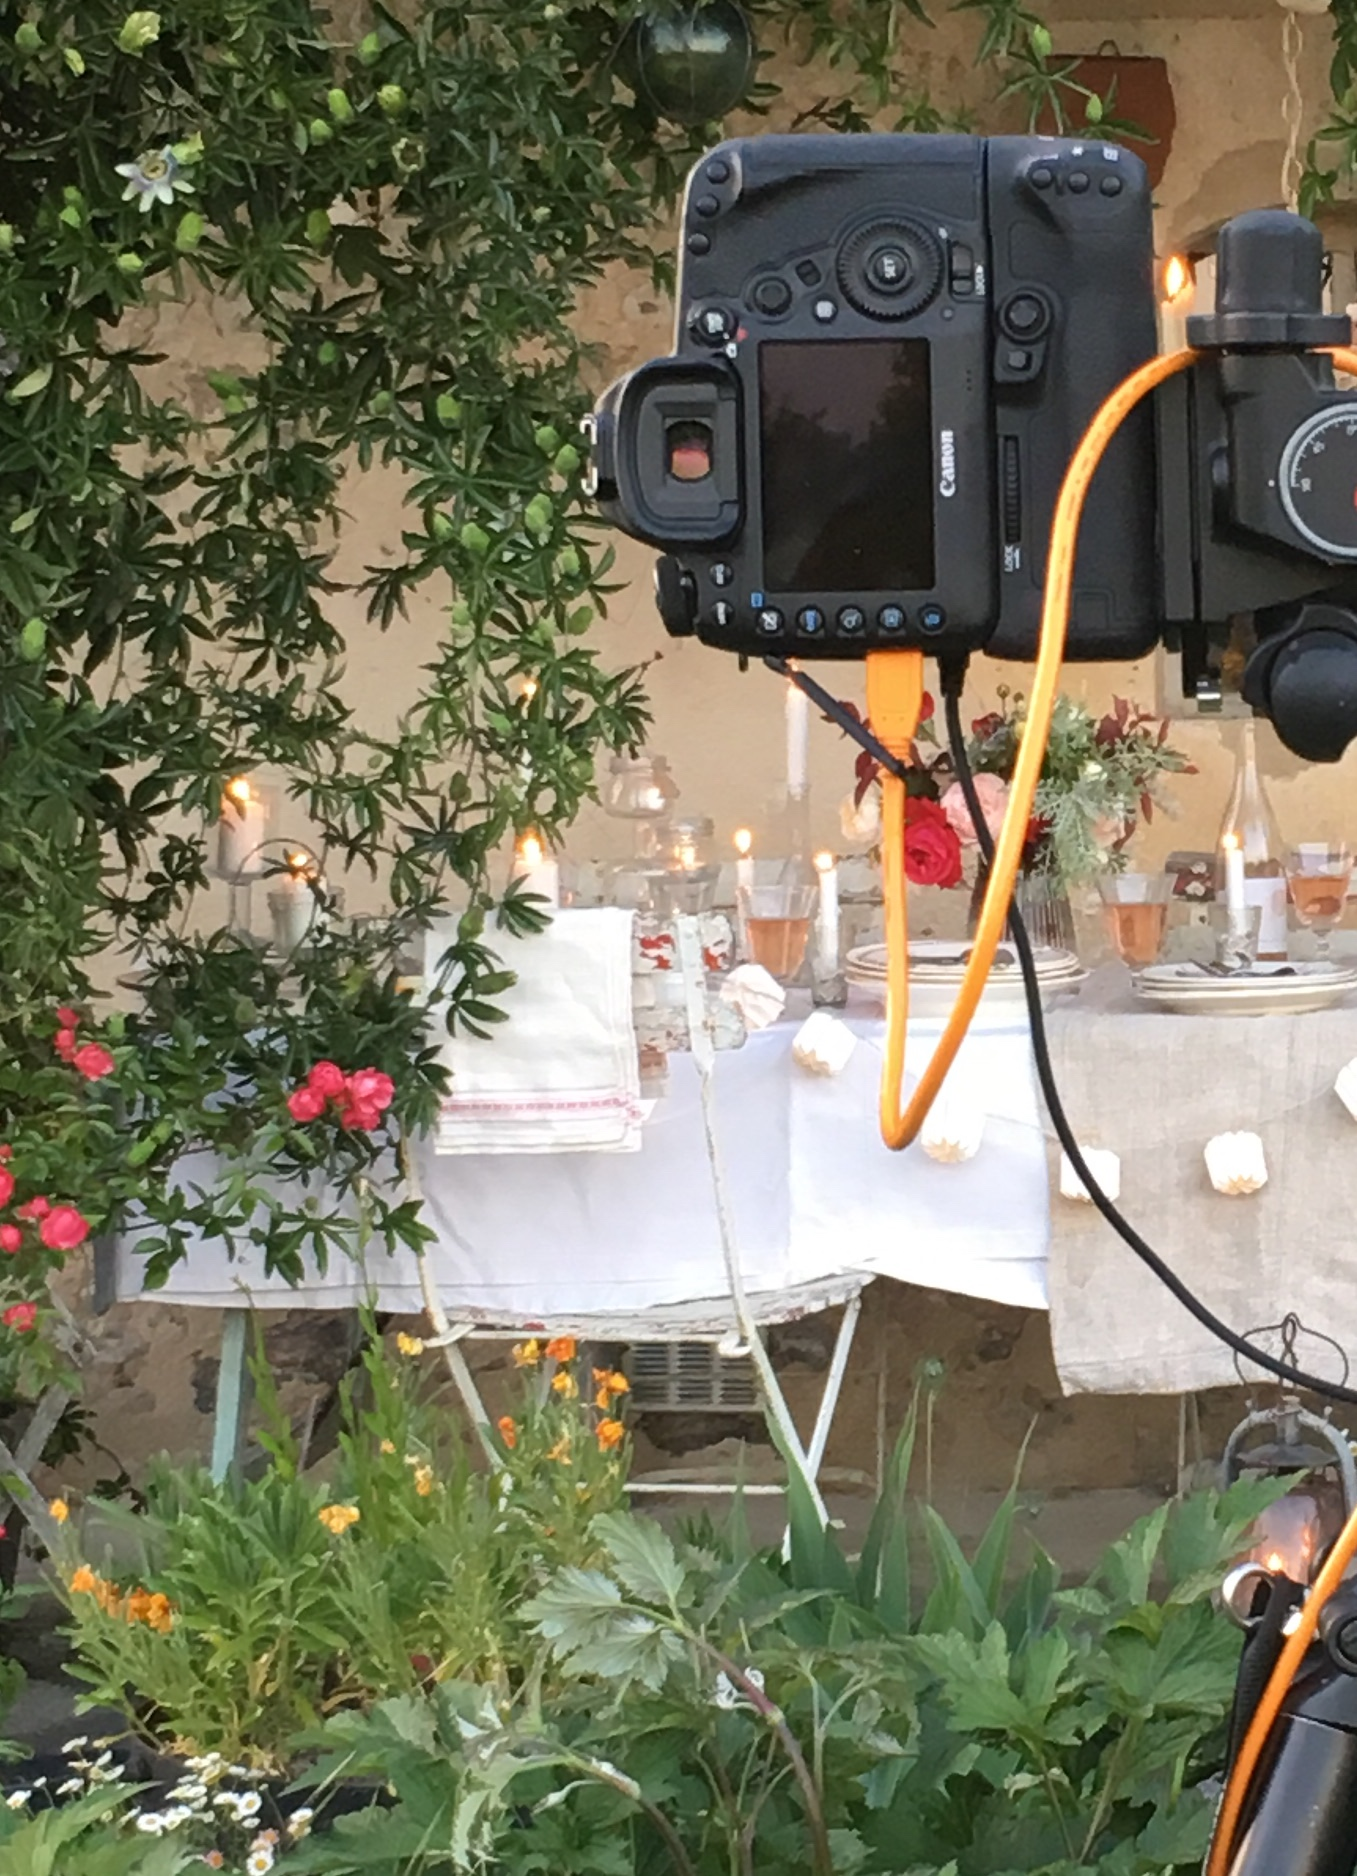 Food styling, behind the scenes - A 6 week online course